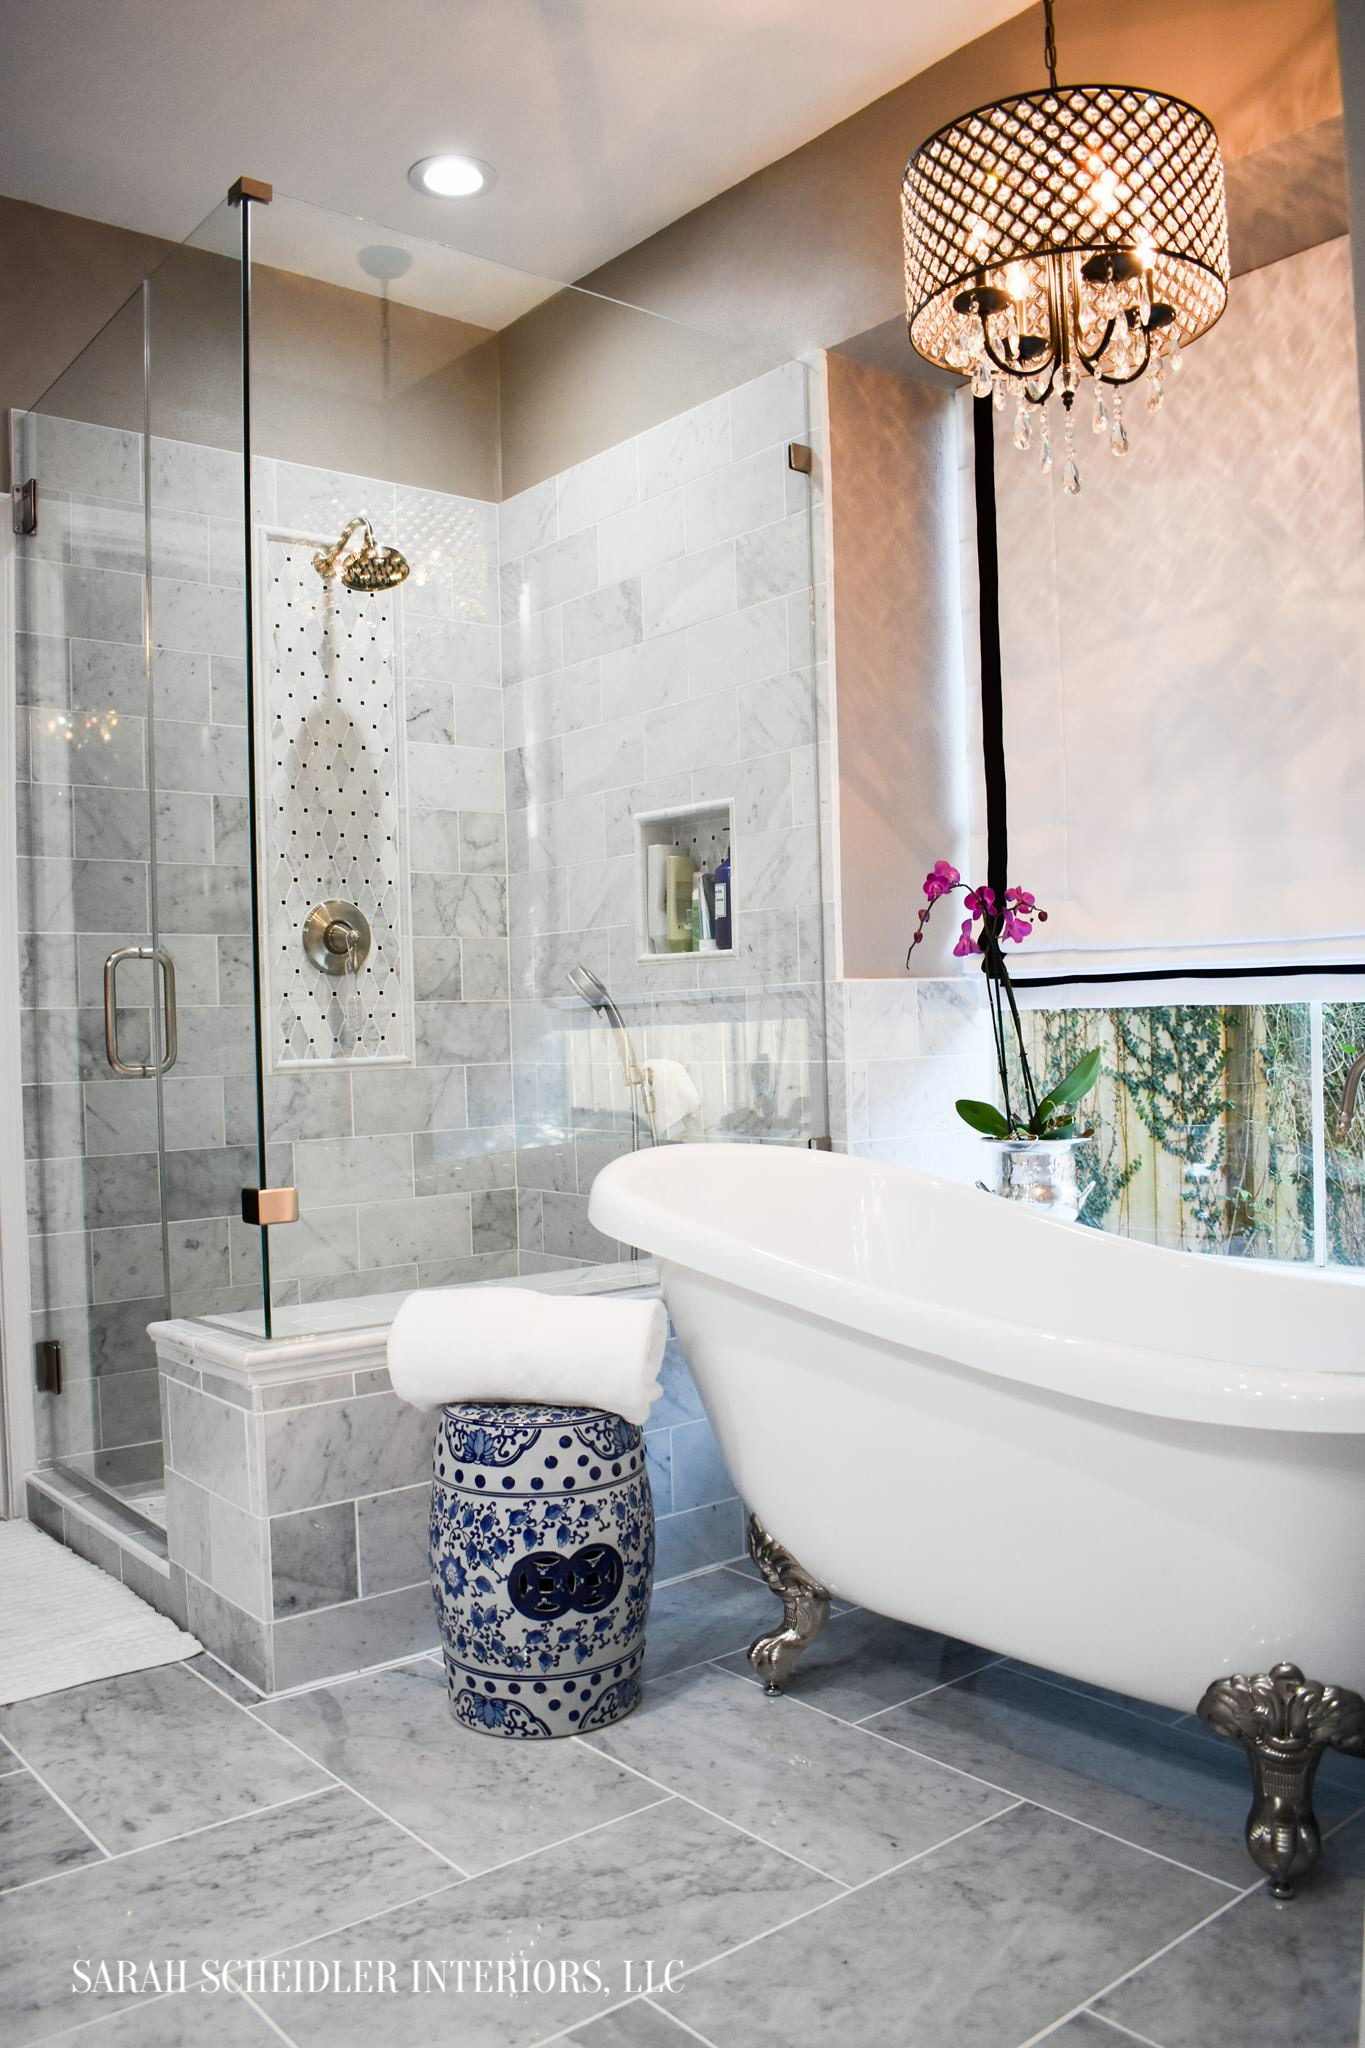 Marble Master Bathroom Design with Frameless Shower, Clawfoot Tub, Crystal Chandelier and Pink Orchid